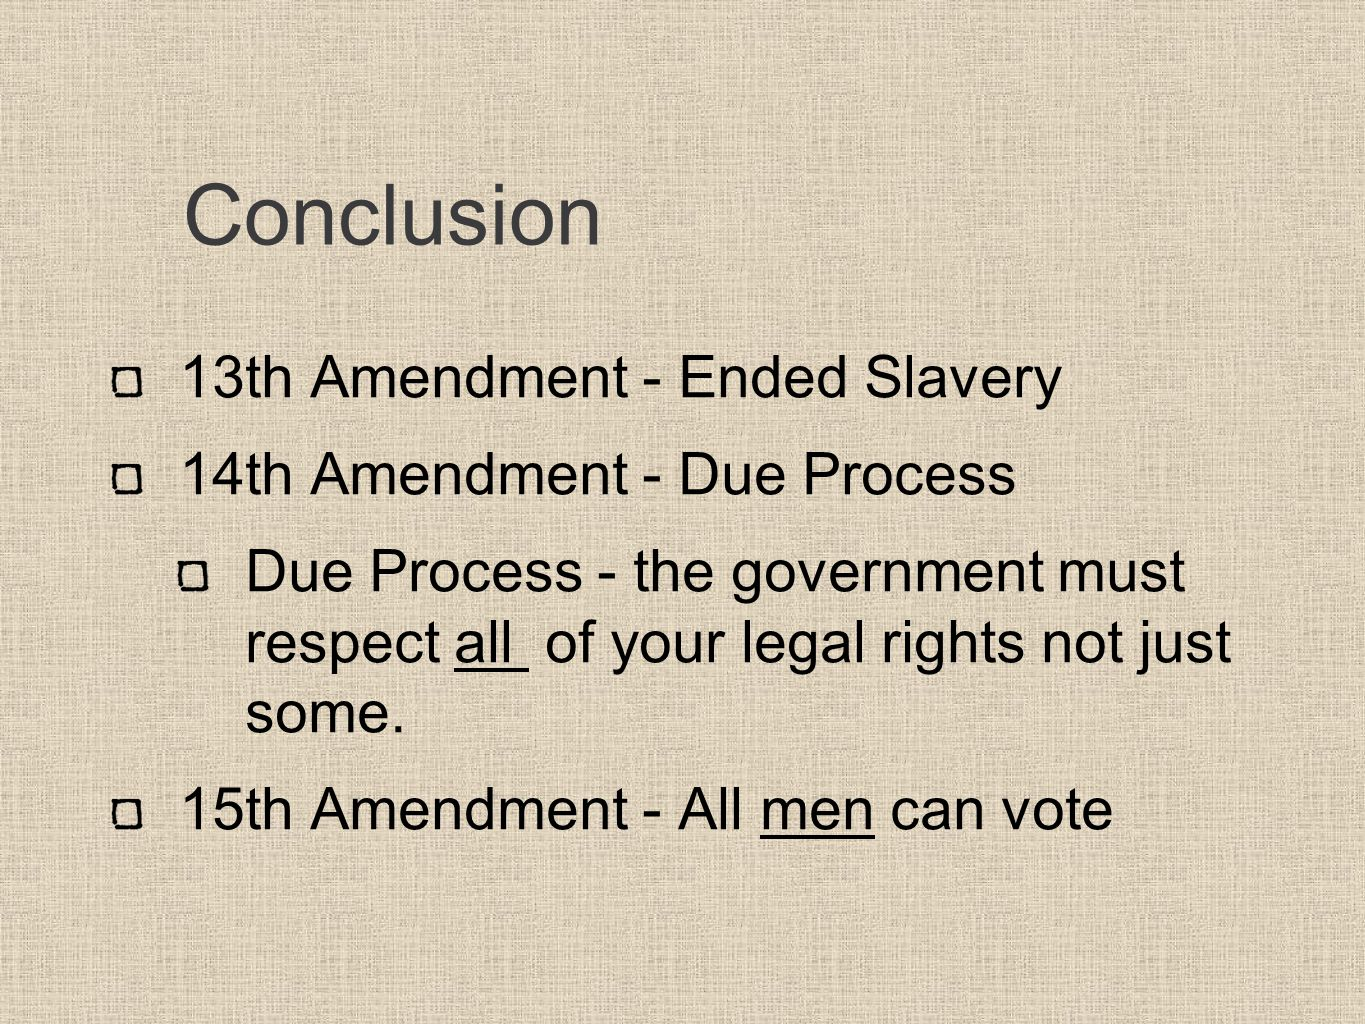 what is the 15th amendment say